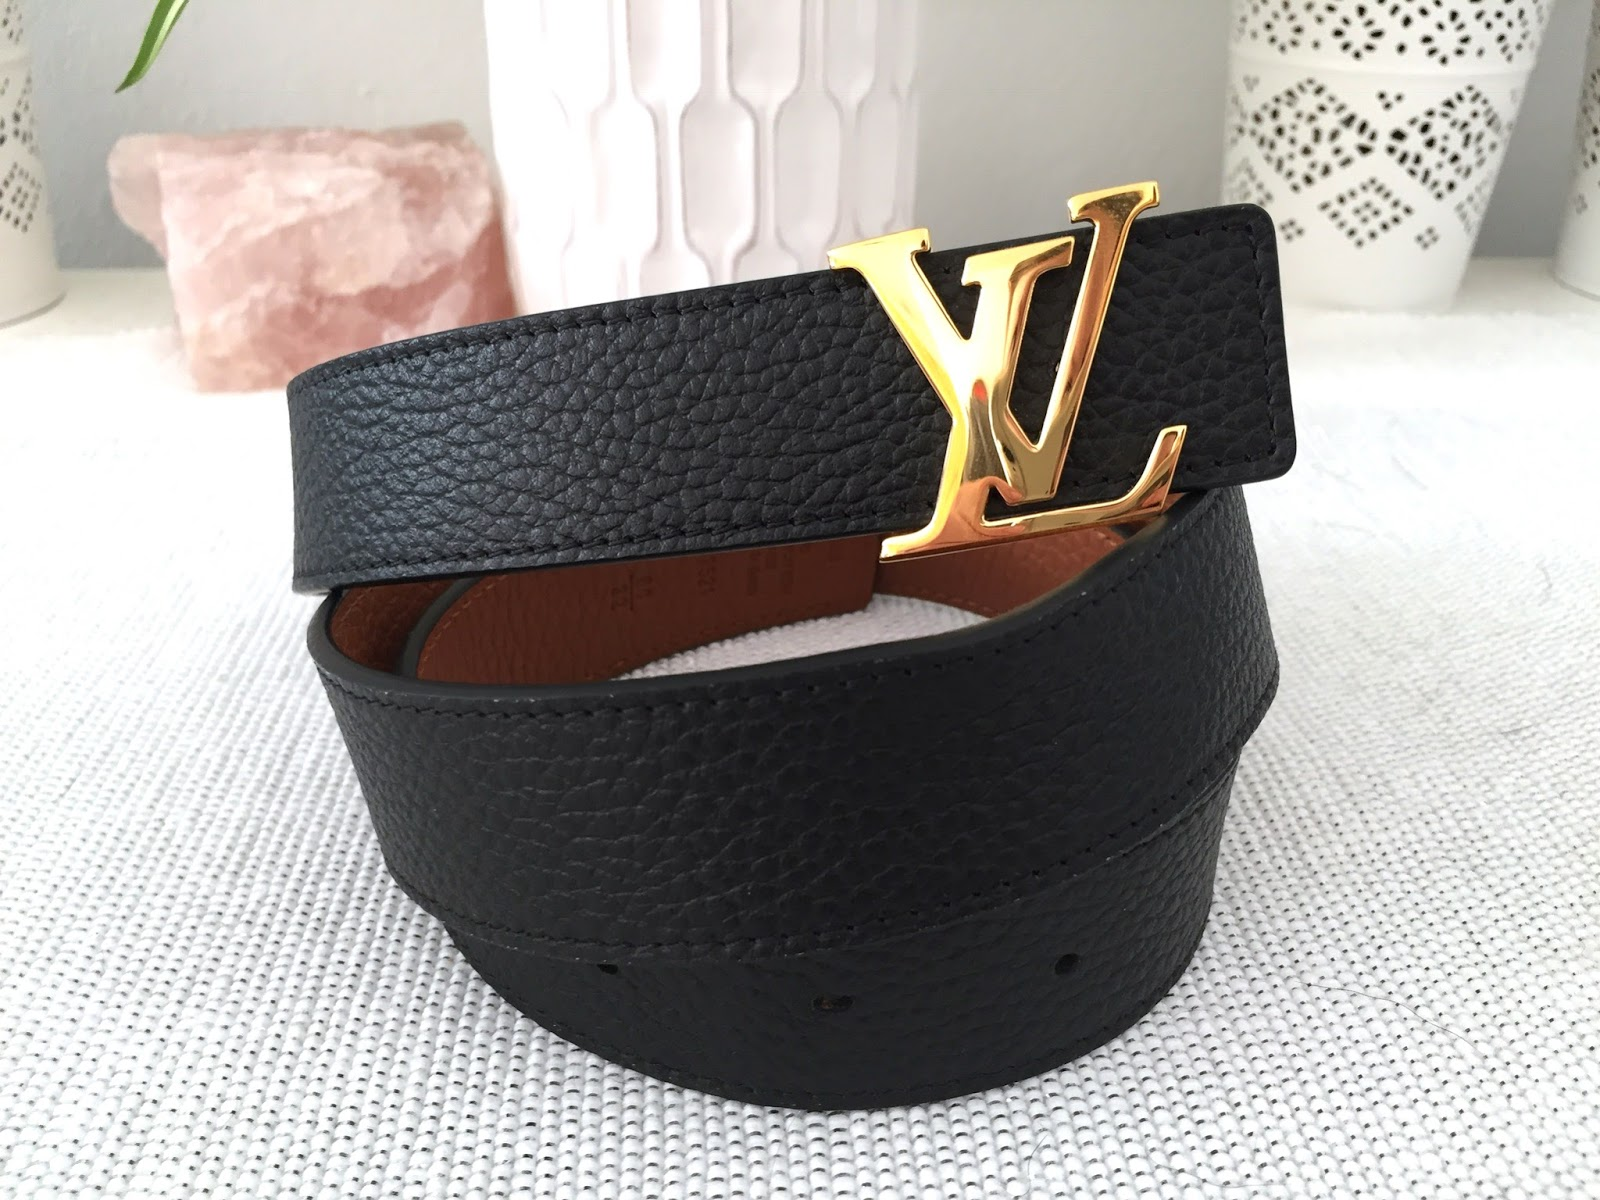 96d964e0048a Louis Vuitton Initials Madeleine Belt    UNBOXING - The Beauty Novel ...